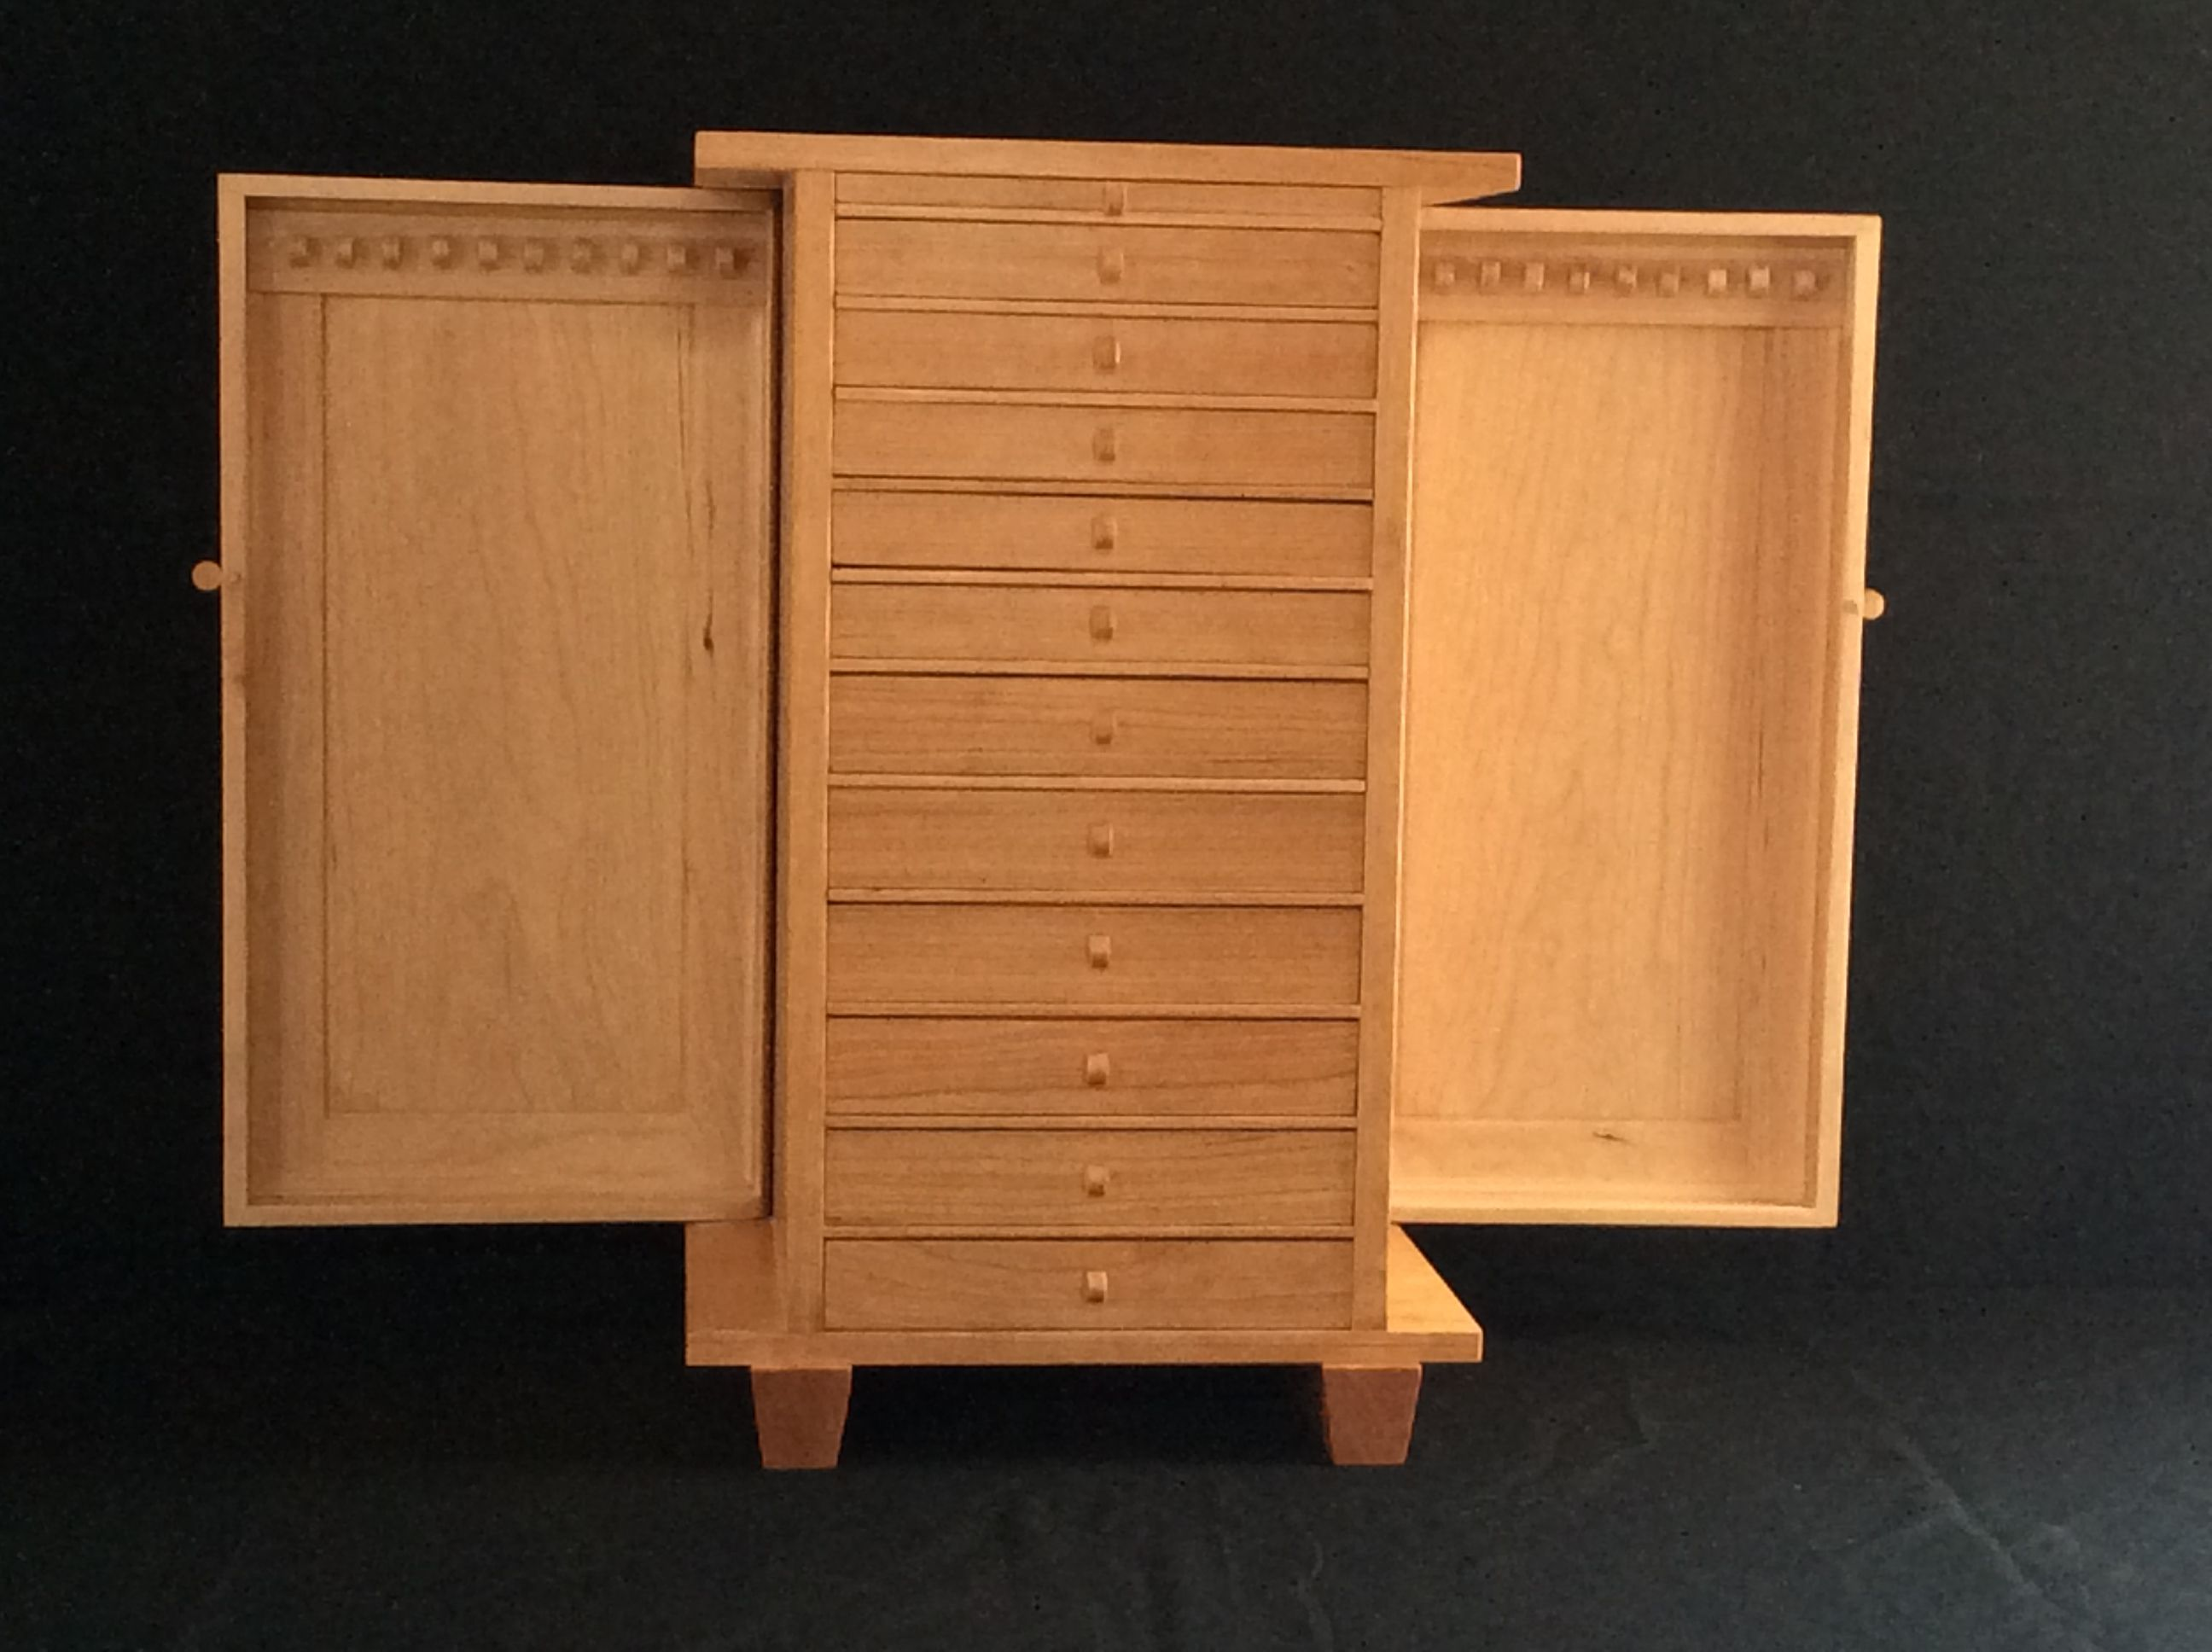 This image shows a jewelry armoire made by David Klenk This image